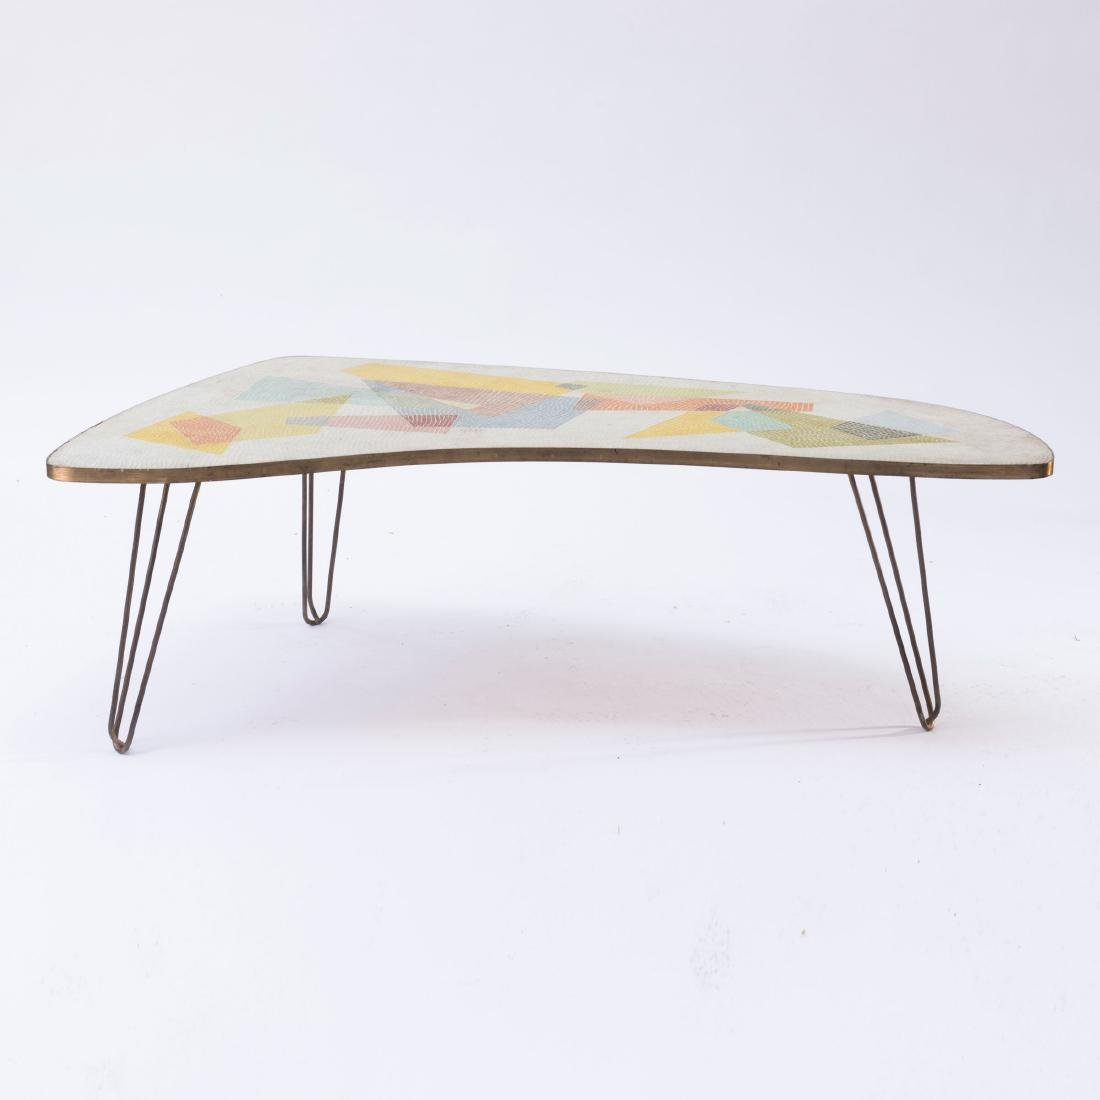 Mosaic table, c. 1953 - 2